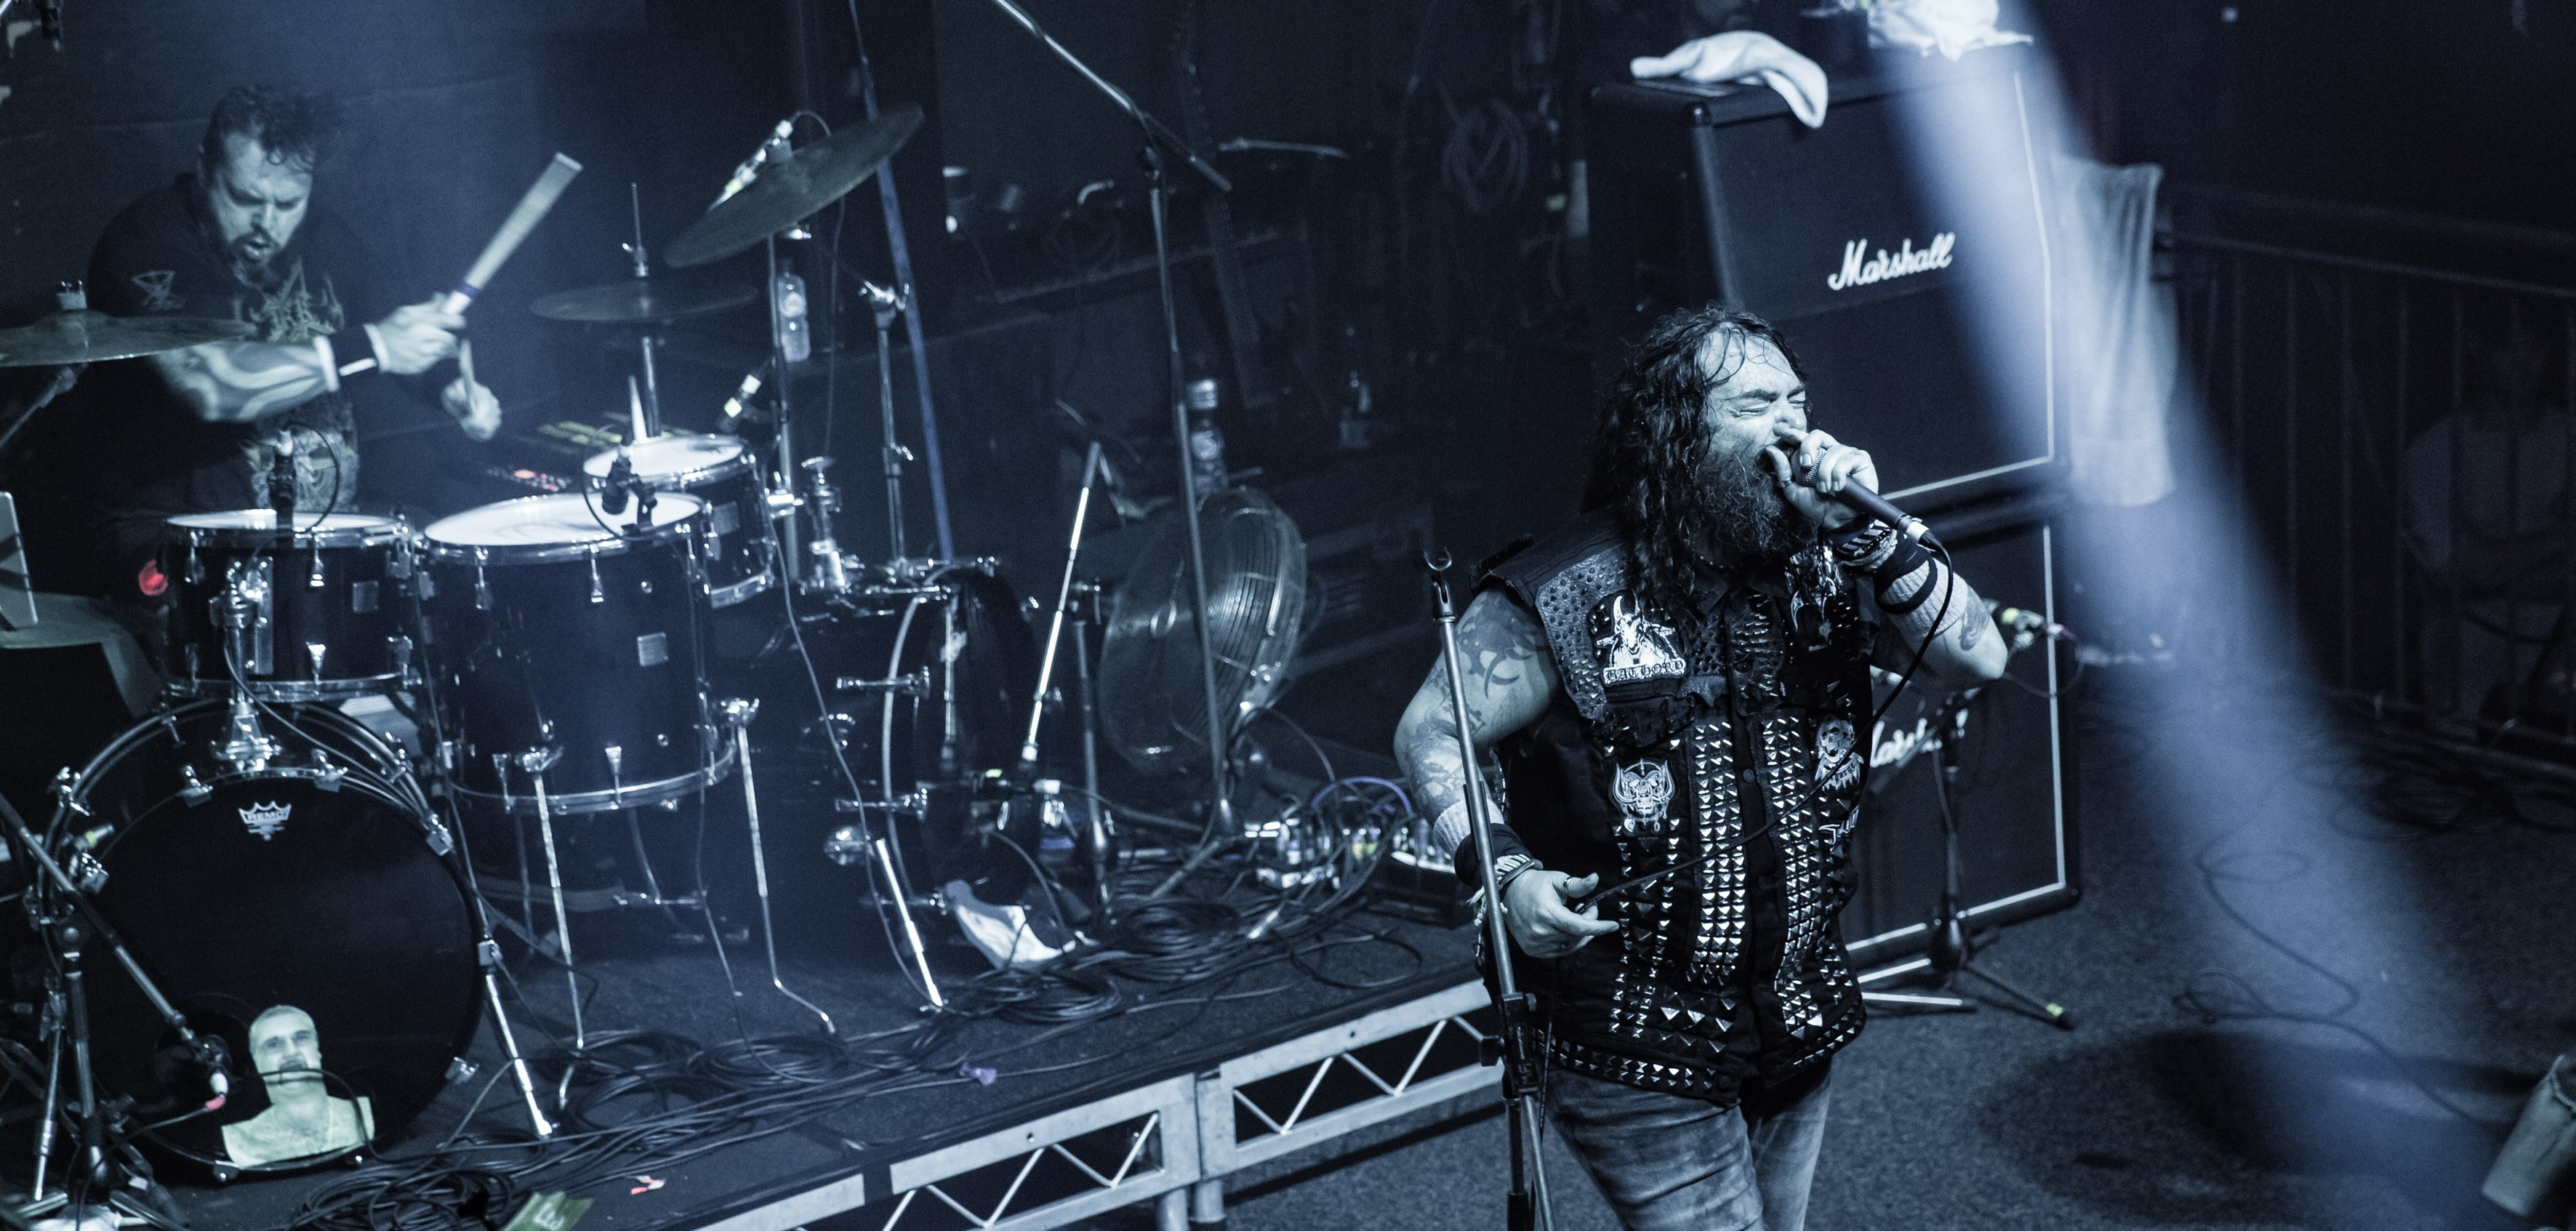 Max & Iggor Cavalera. Photo by Den Rad